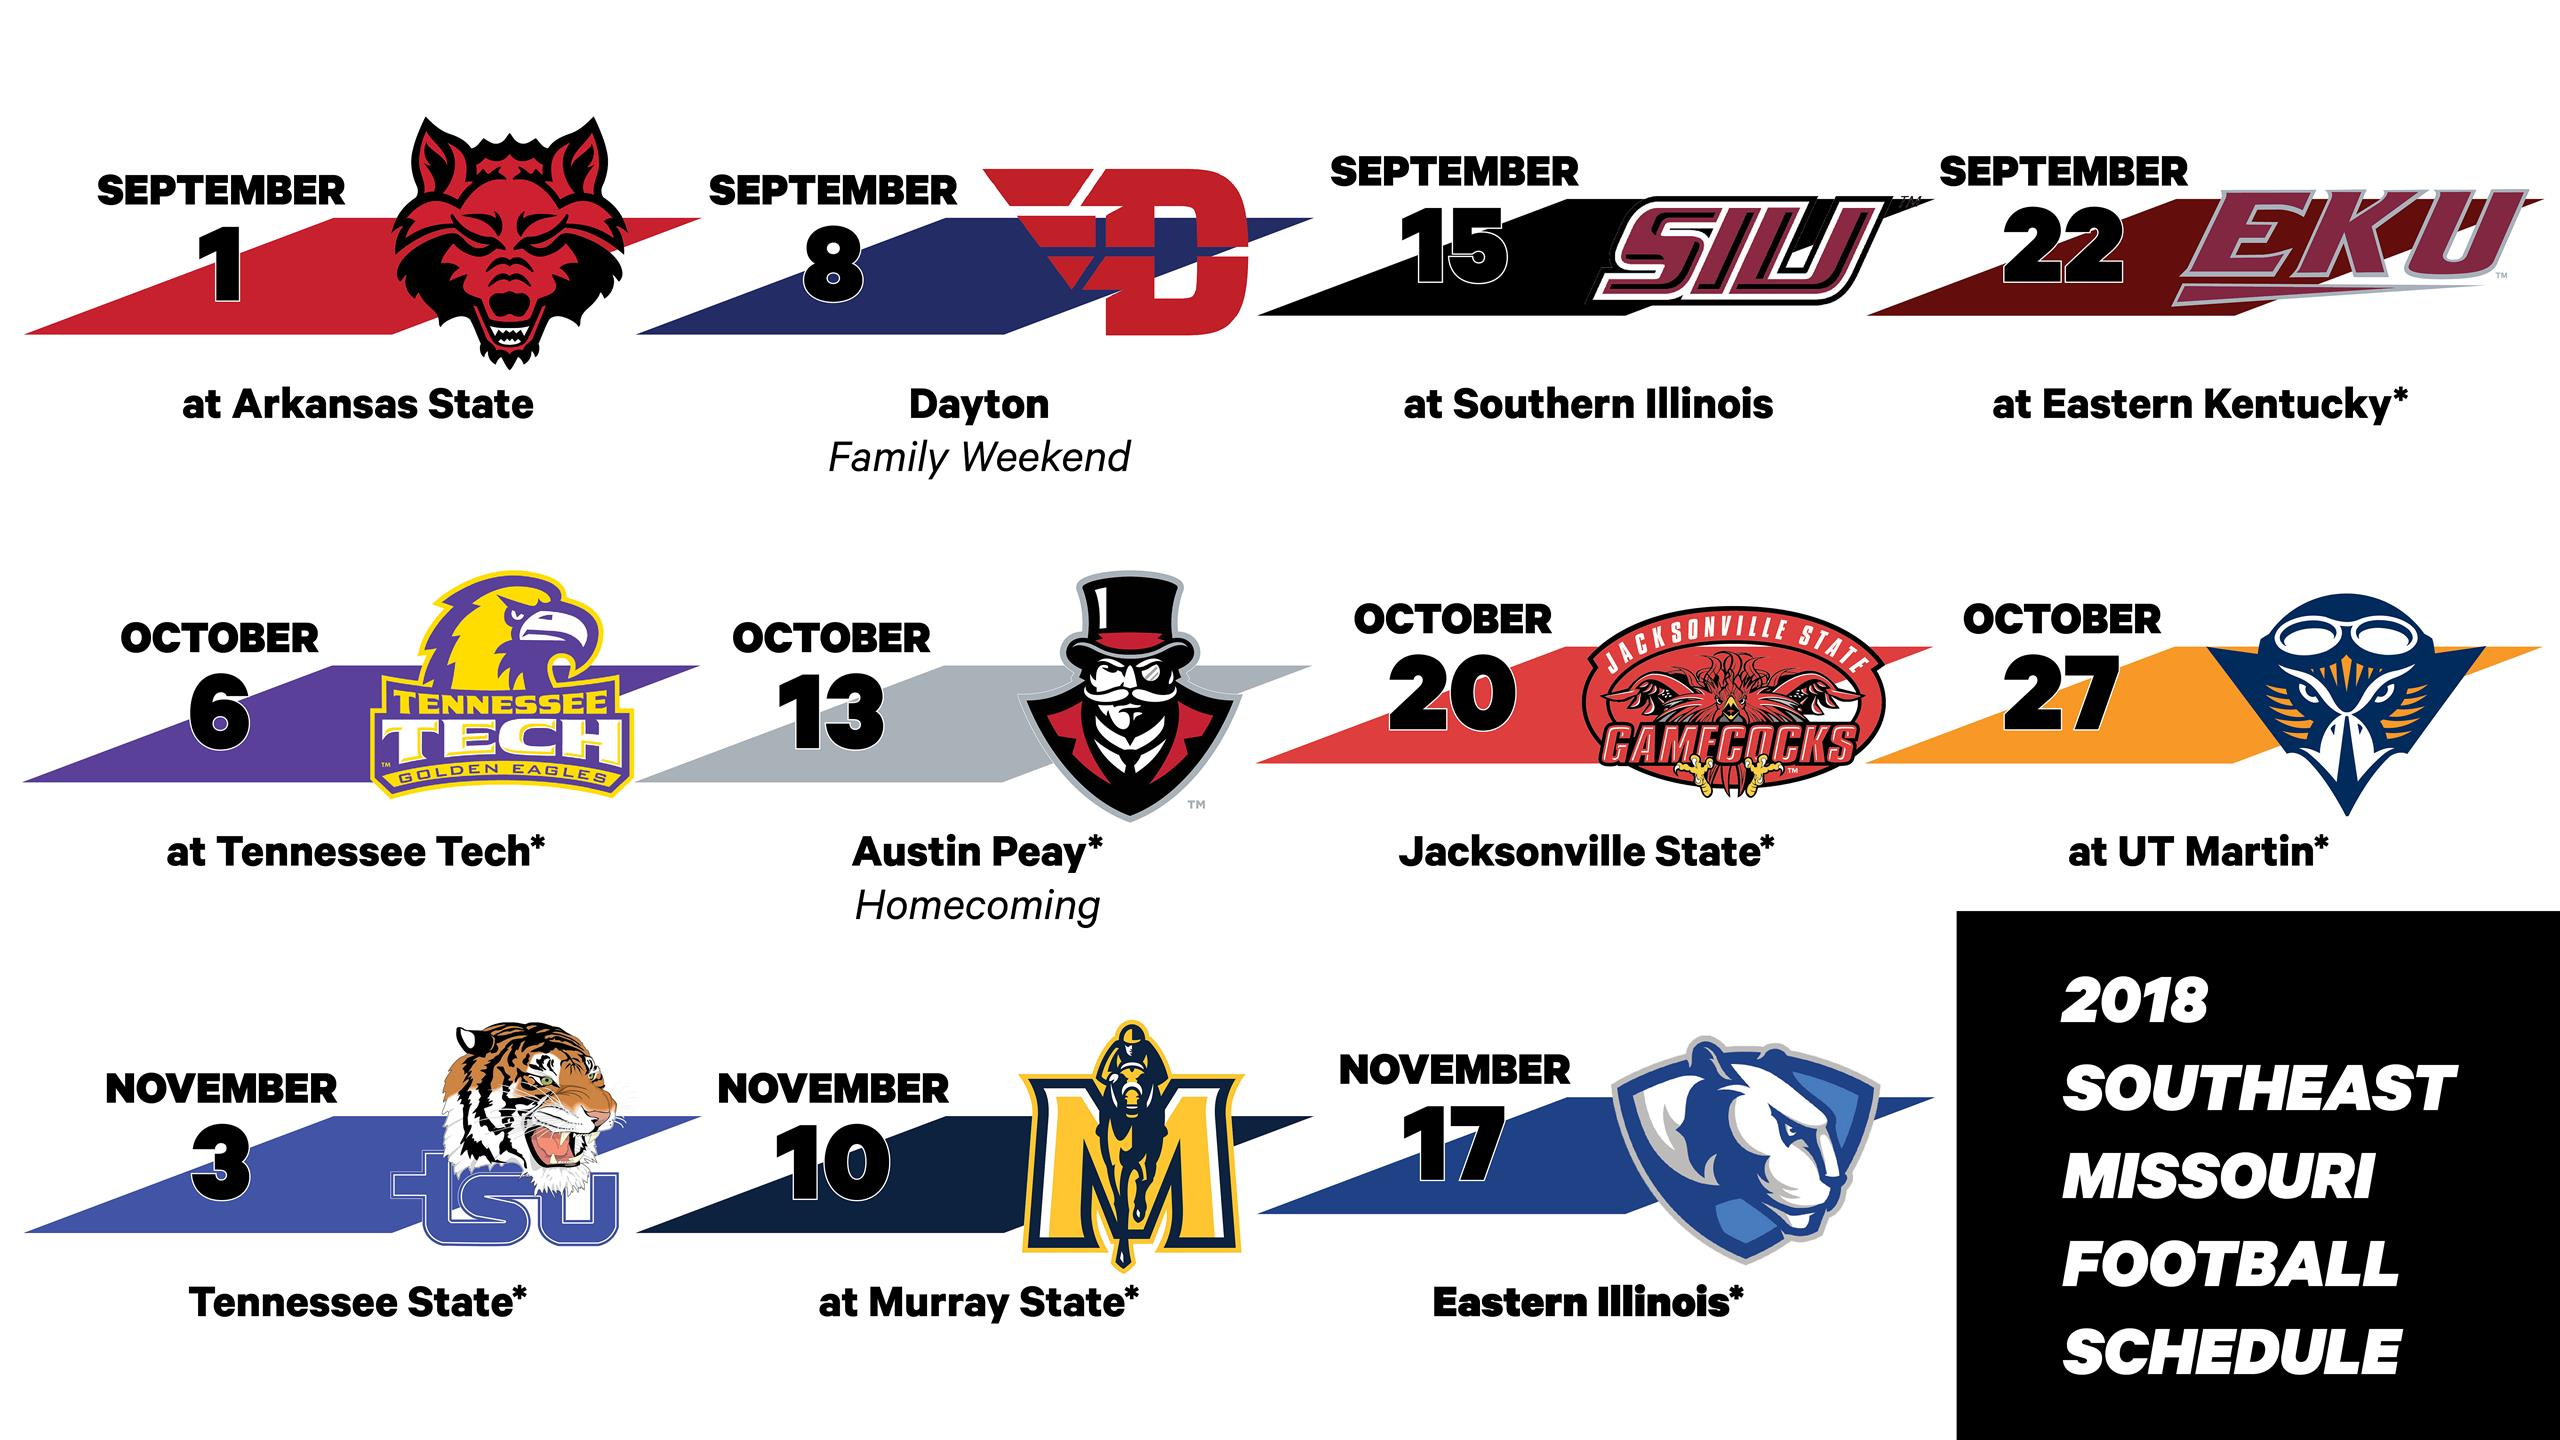 Austin Peay Football Schedule 2019 2018 Football Schedule Announced   Southeast Missouri State